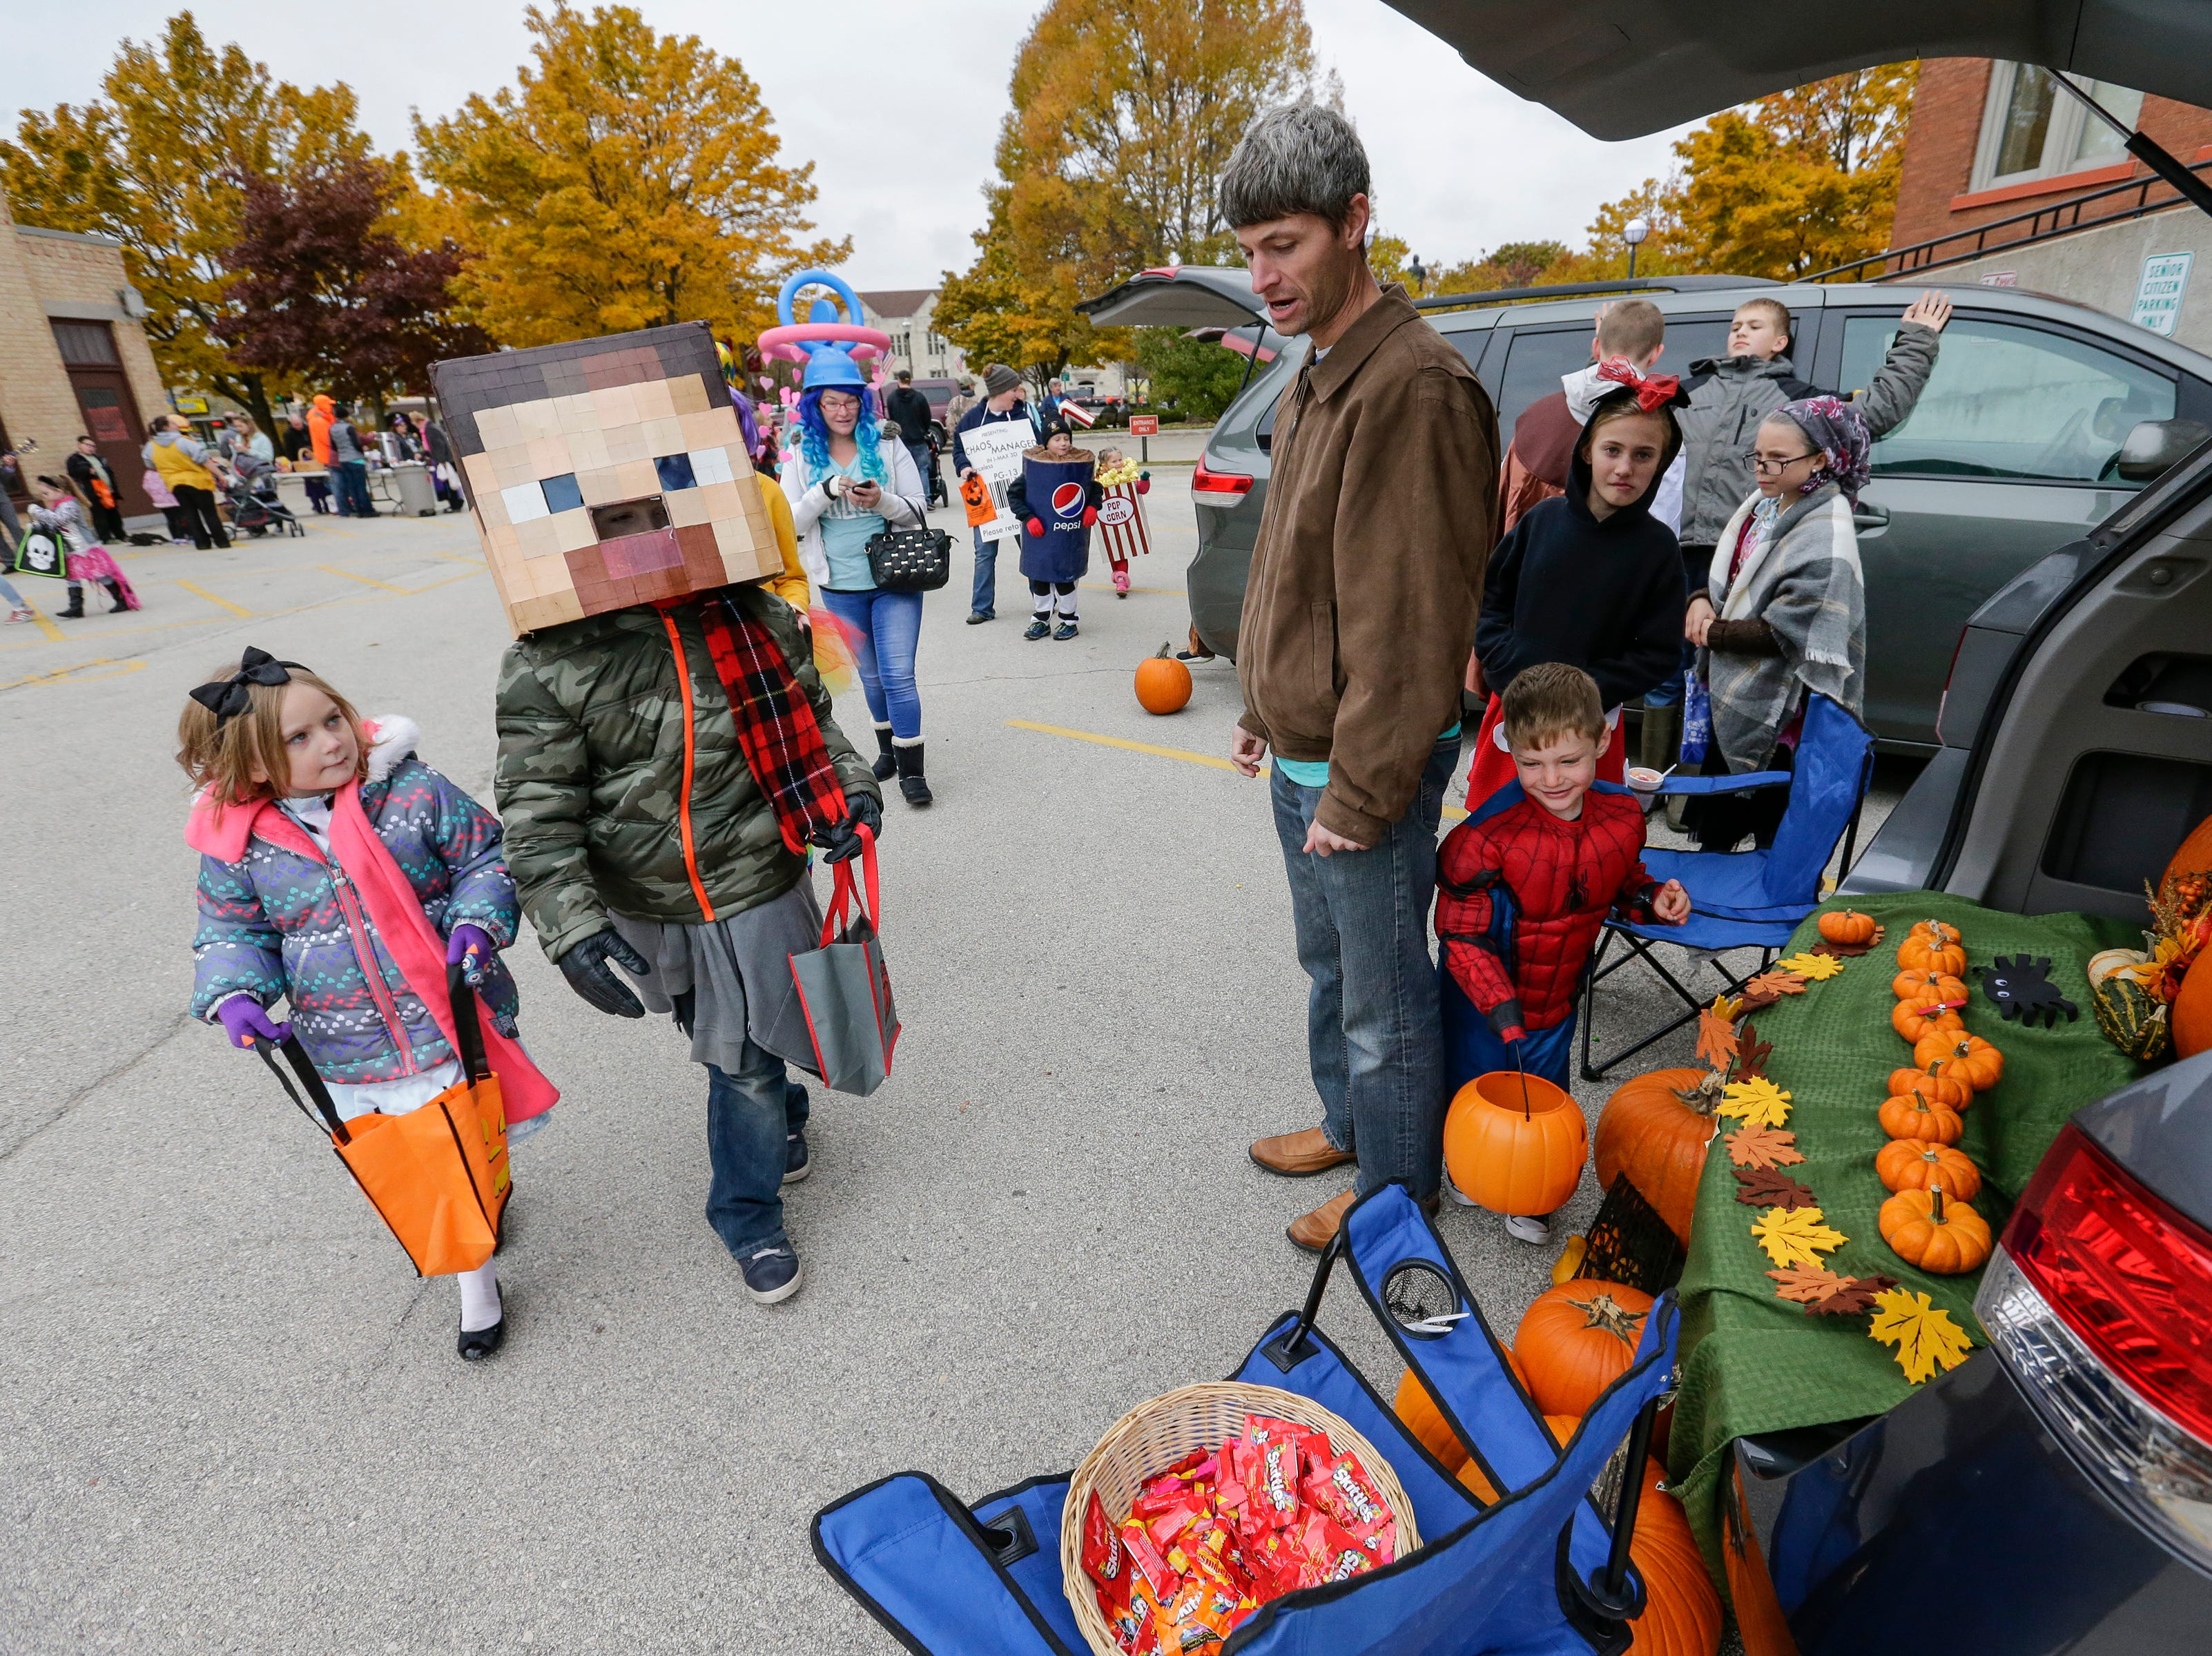 Trick or treaters make their way from car to car during Trunk or Treat Saturday, October 27, 2018, in Two Rivers, Wis. Joshua Clark/USA TODAY NETWORK-Wisconsin